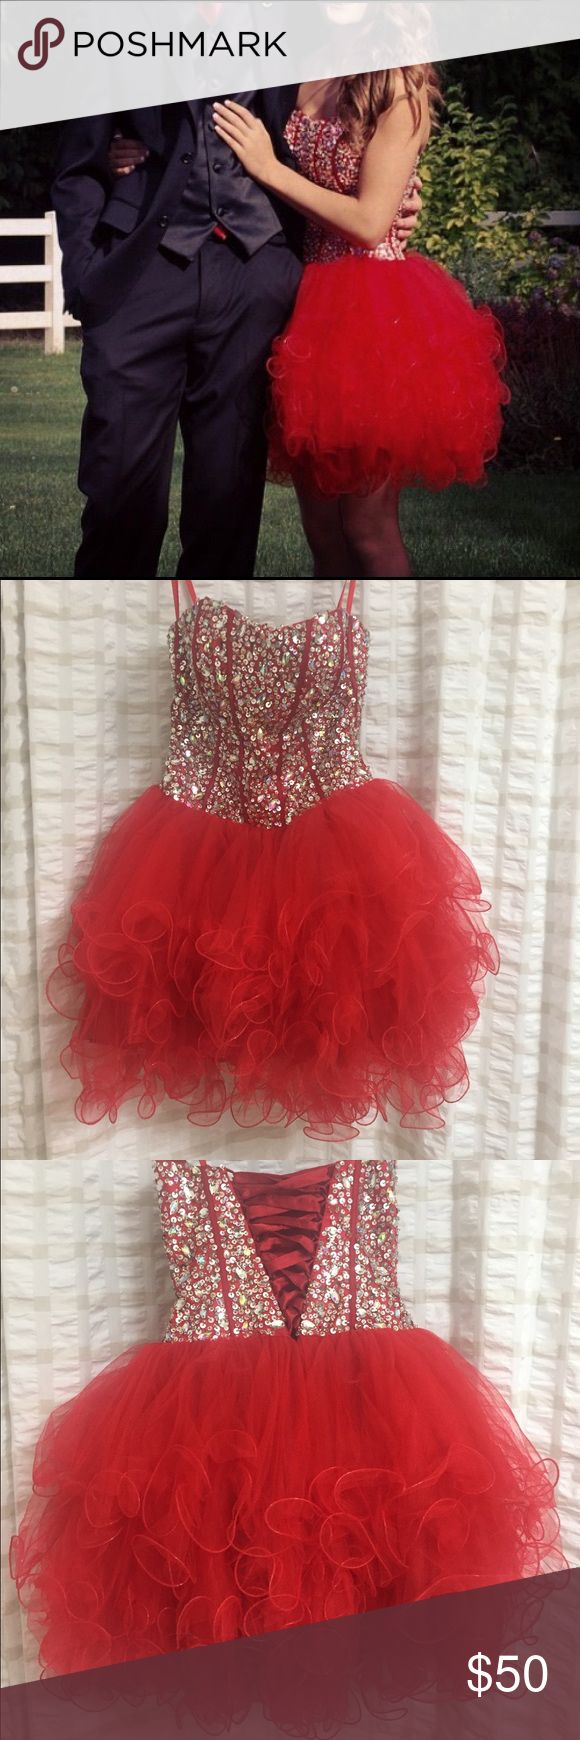 Homecoming/Prom Dress PLEASE READ: Red short strapless homecoming/prom dress. Size S. Worn once for homecoming 2014. Lots of sparkles. Comes with red shawl that came with dress when bought, hanger, and plastic wrapping. Dresses Prom